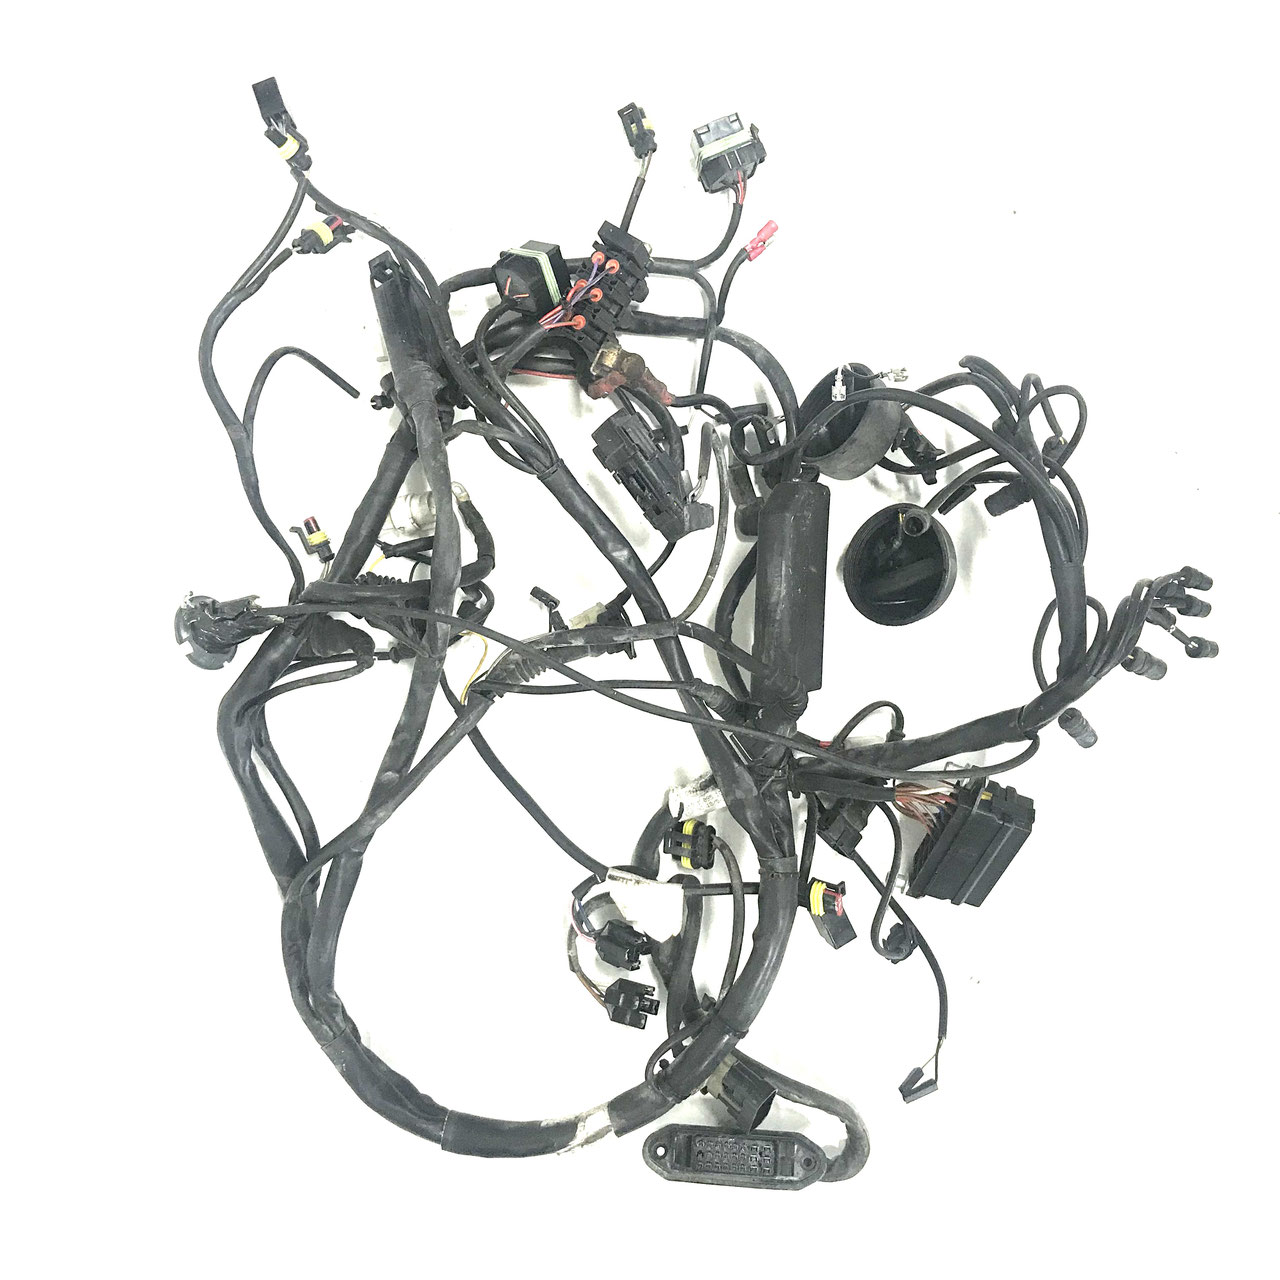 wiring harnesses - red fox import